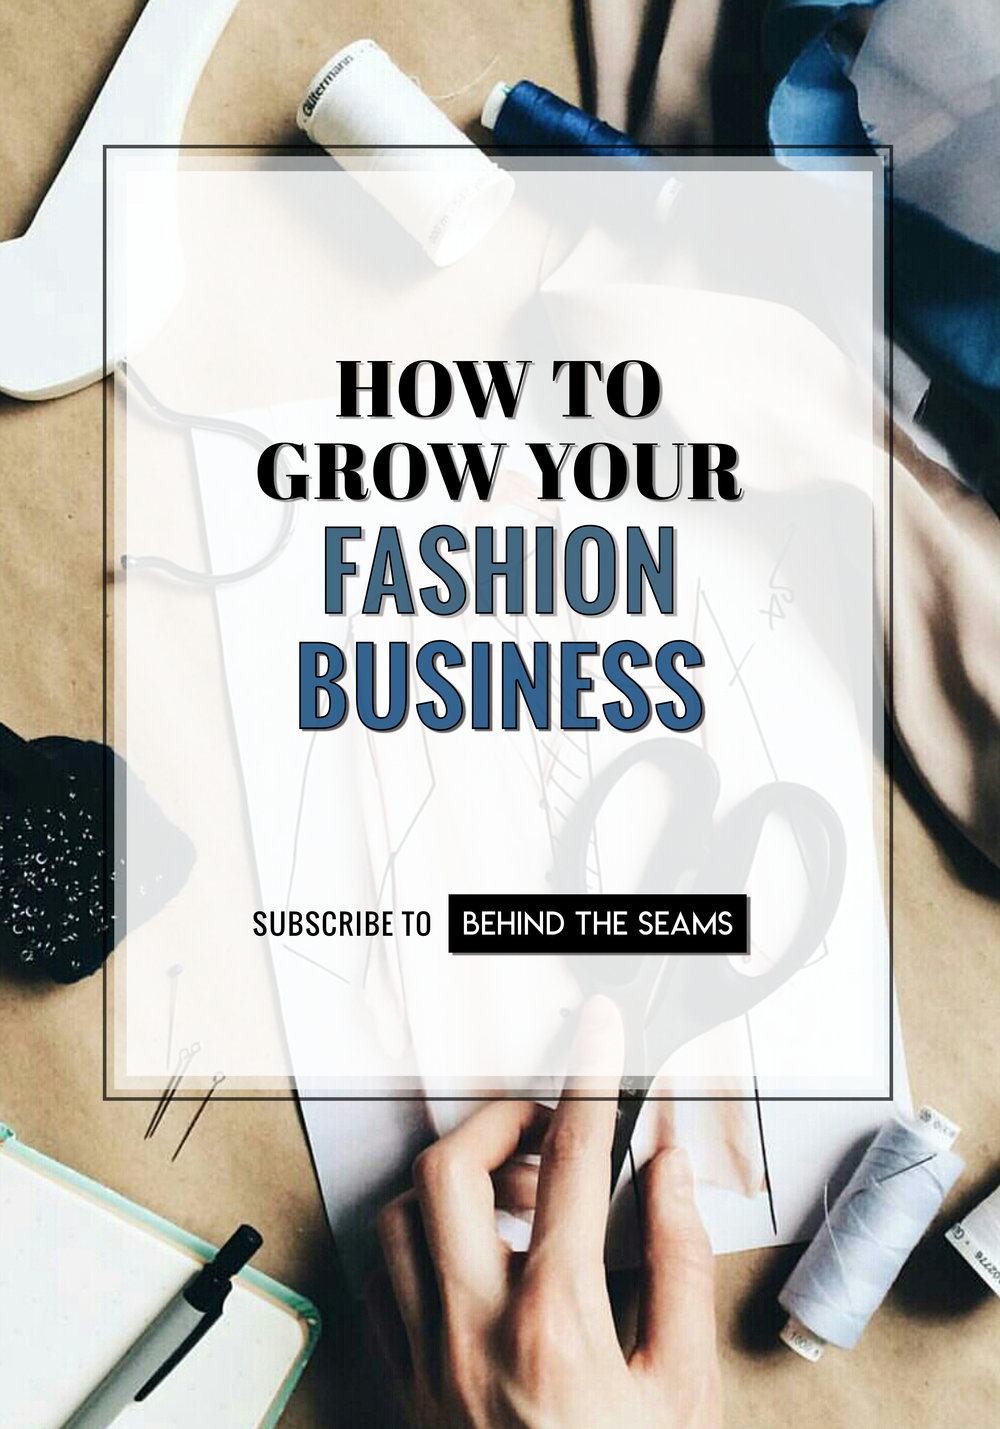 Behind the Seams - Fashion Business